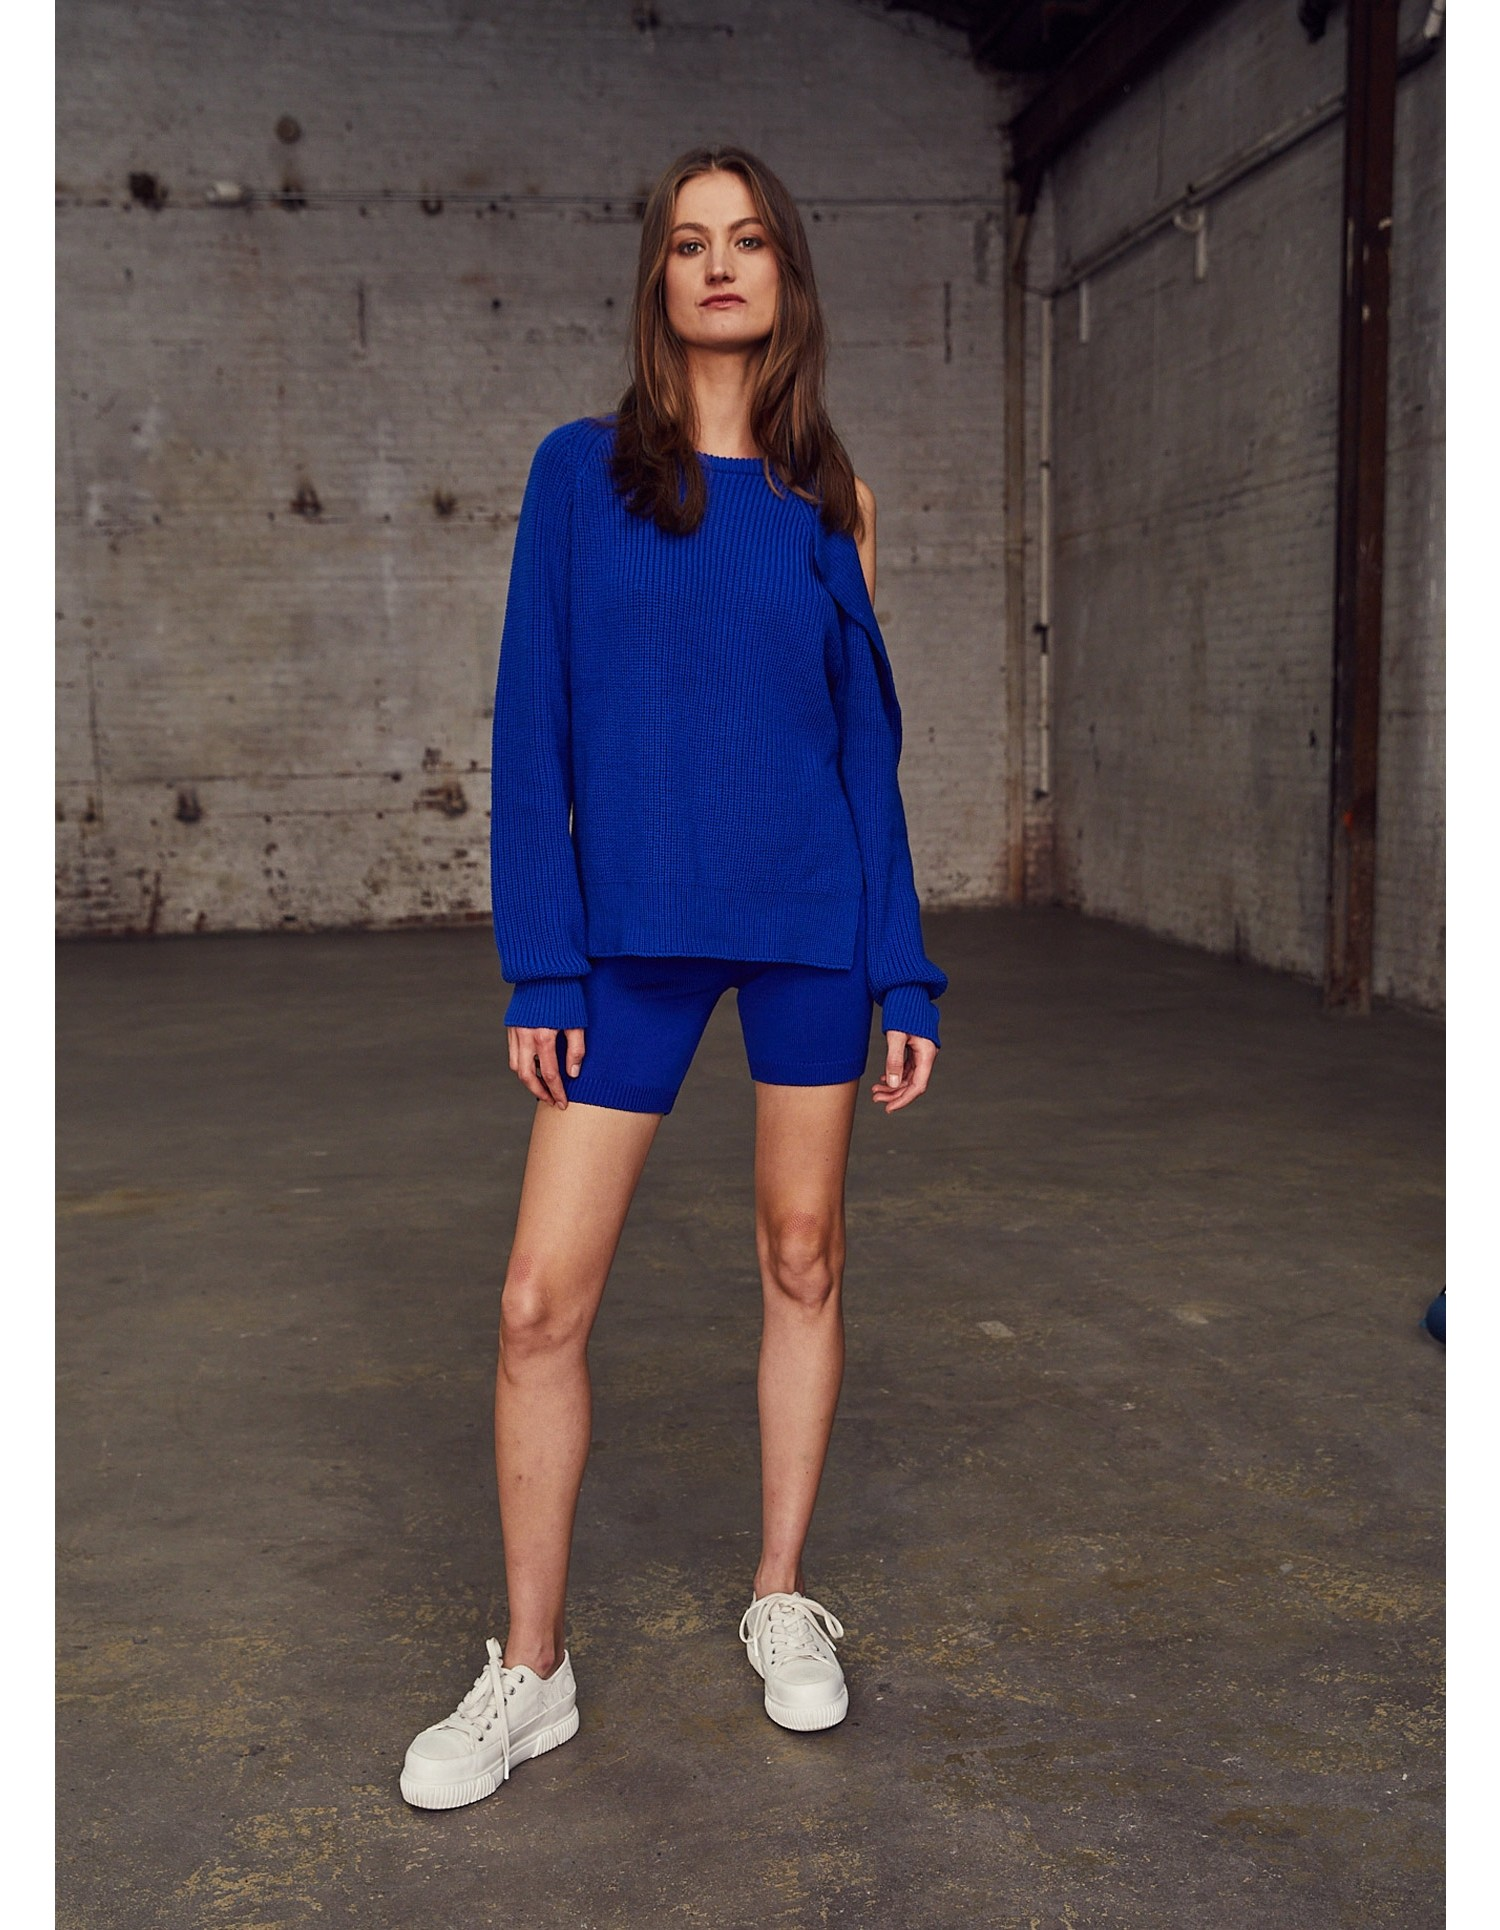 MONSE Knitted Shorts in Electric Blue on Model Action View